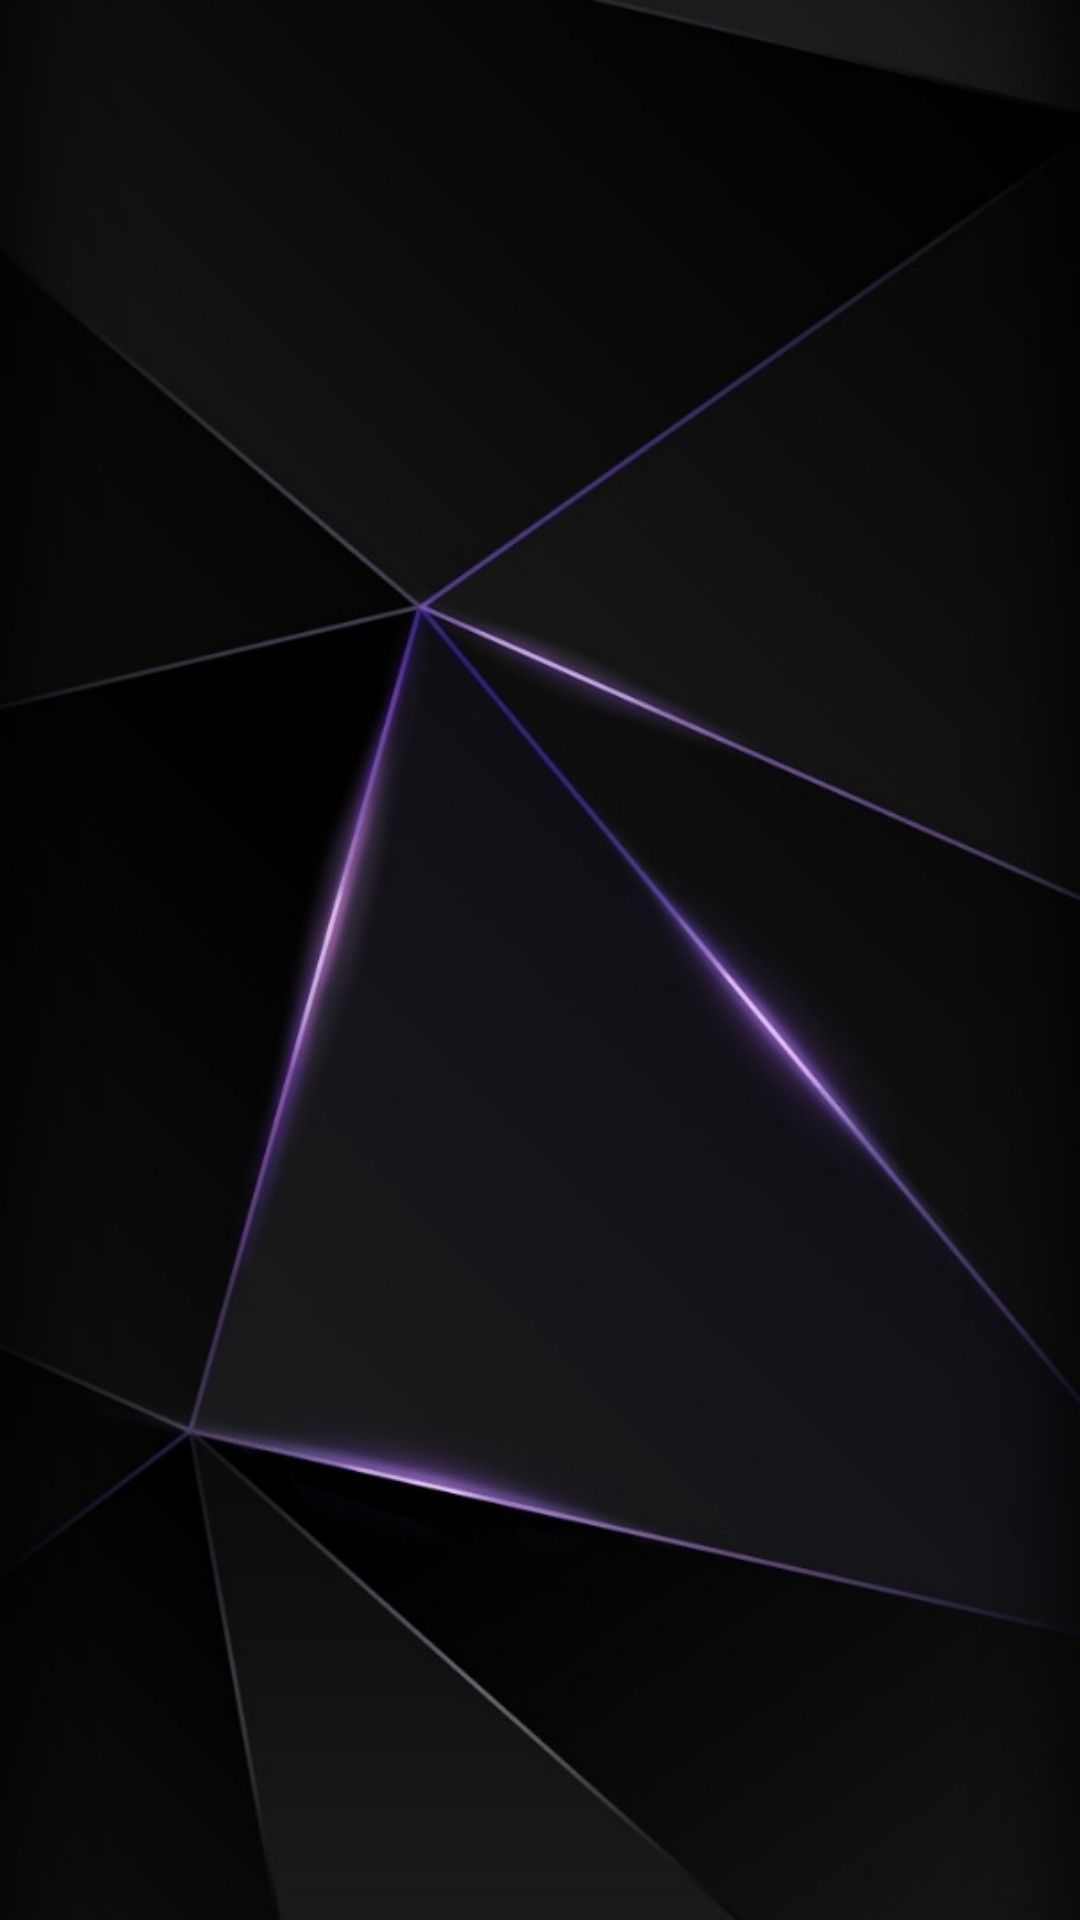 Purple Black Violet Blue Light Line Apple Watch Wallpaper Iphone Wallpaper Dark Wallpaper